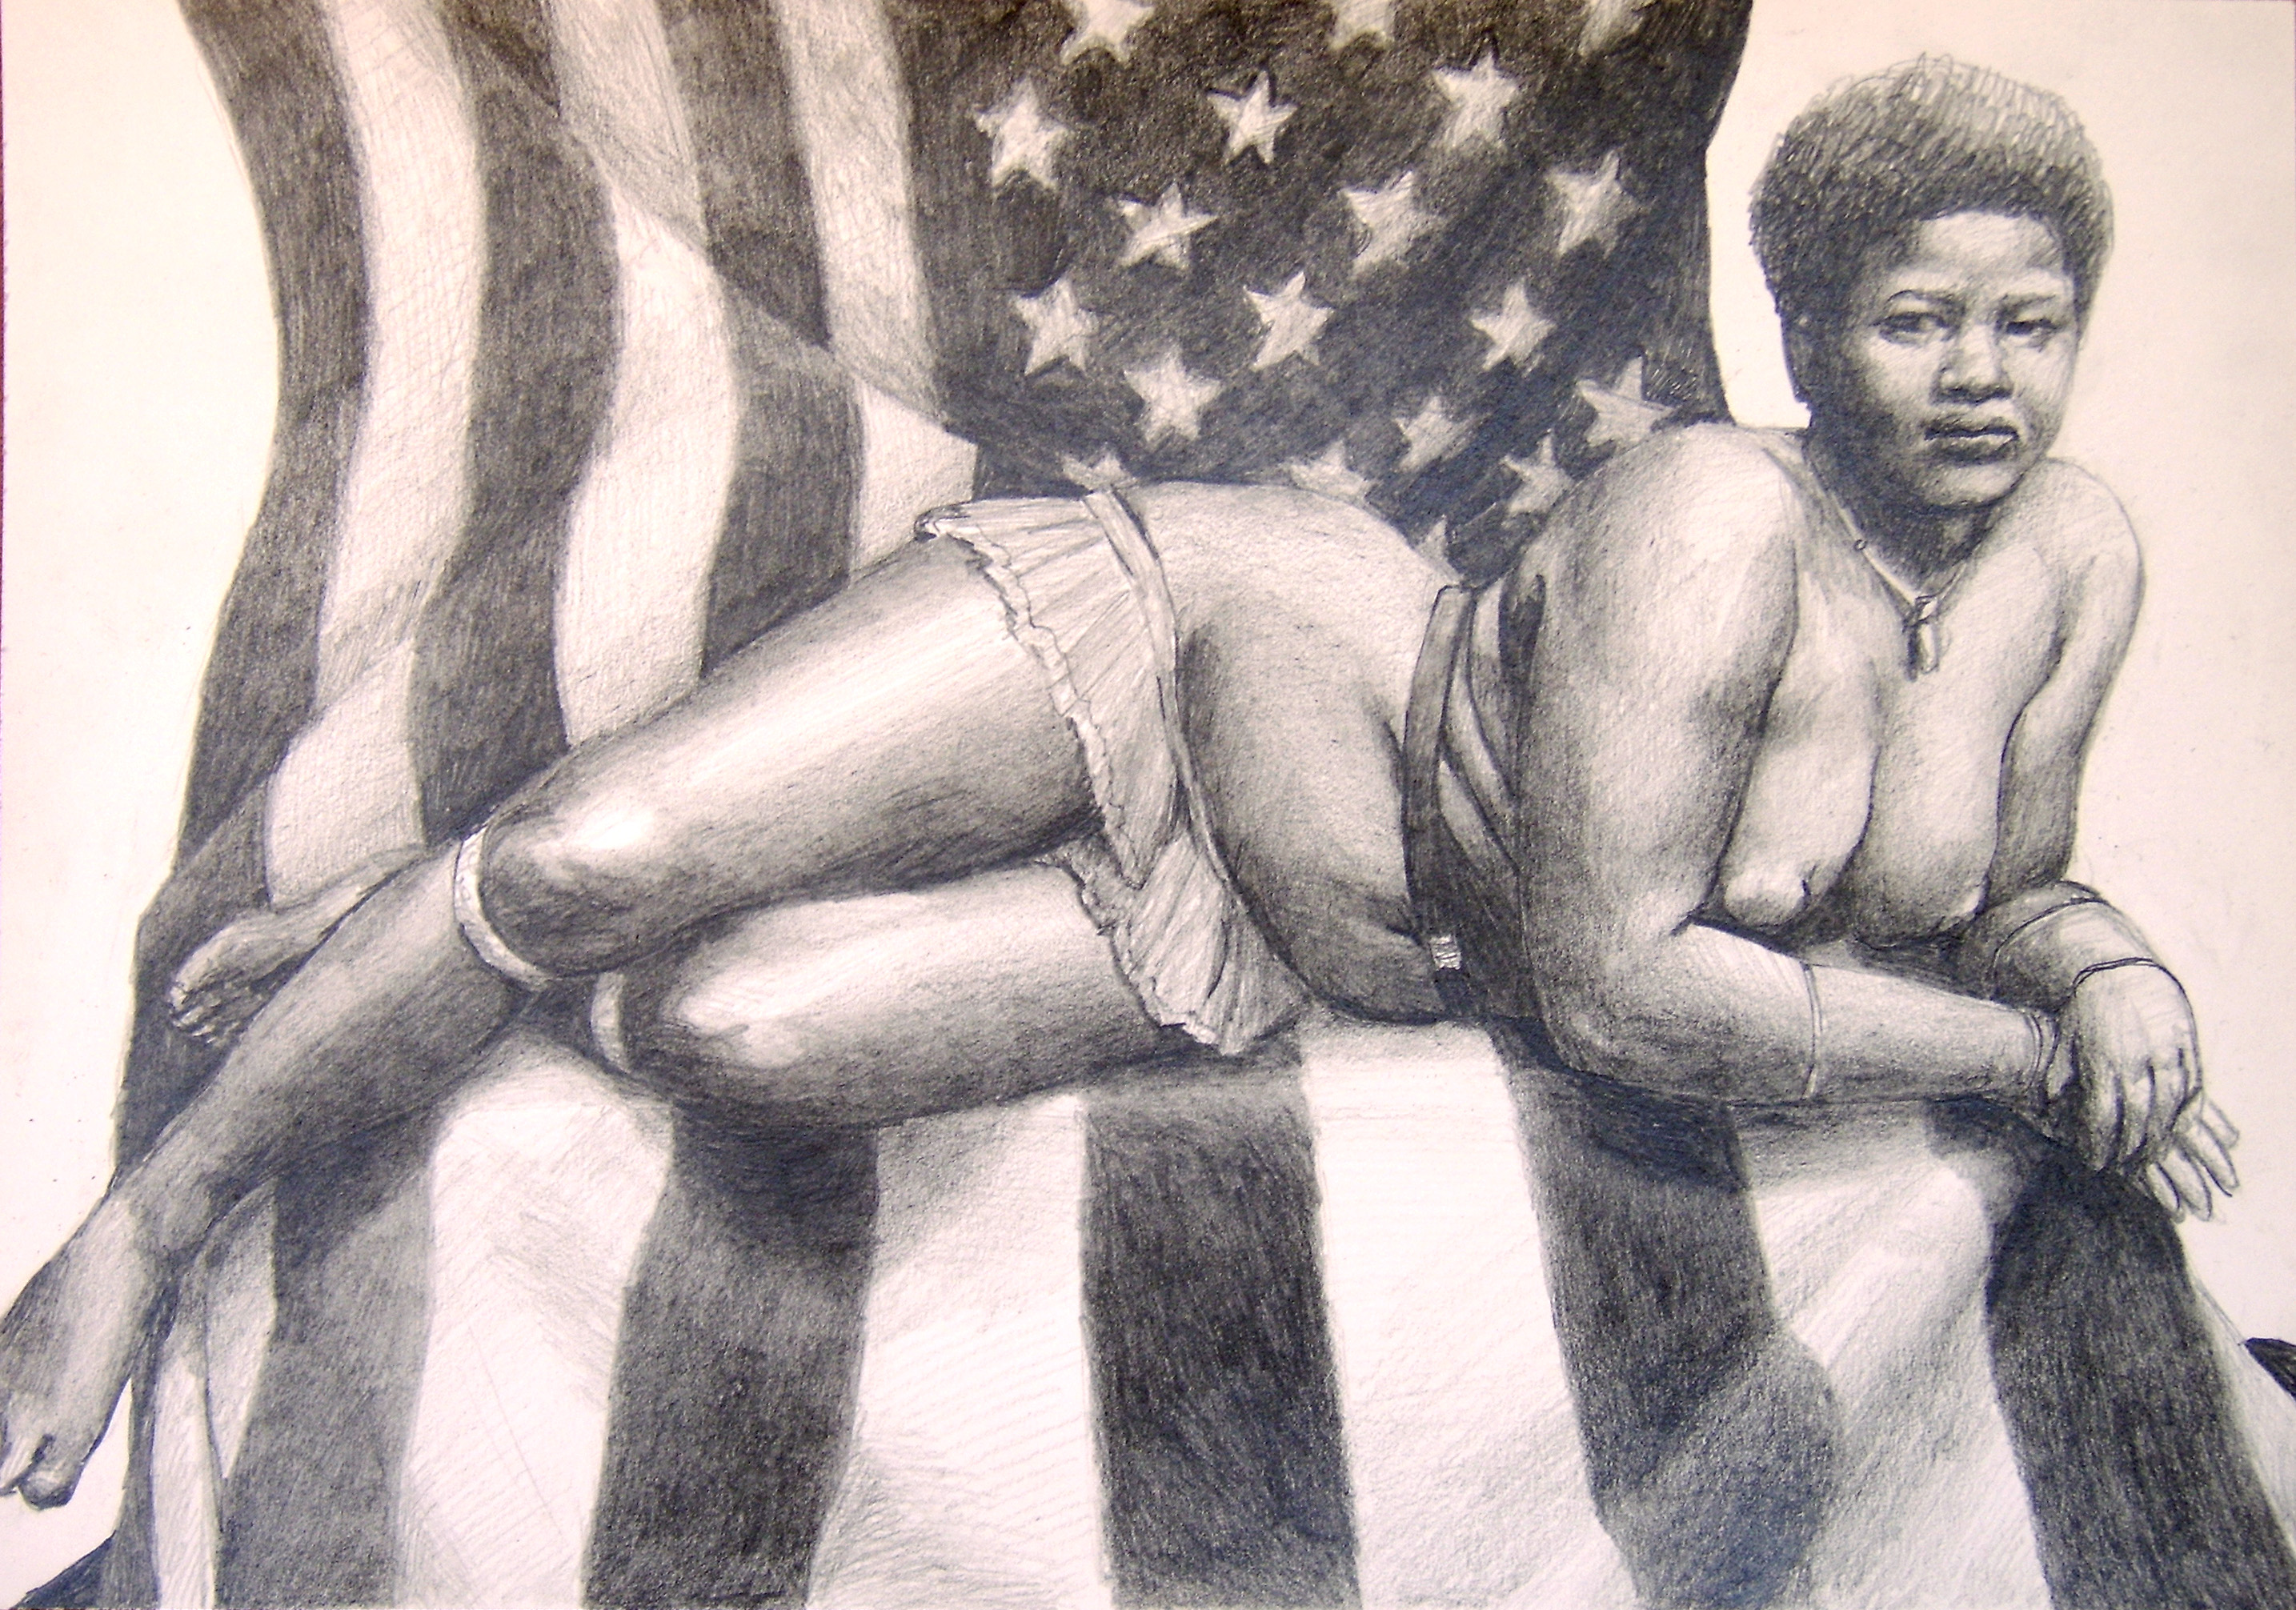 Erotic pencil drawings of african americans